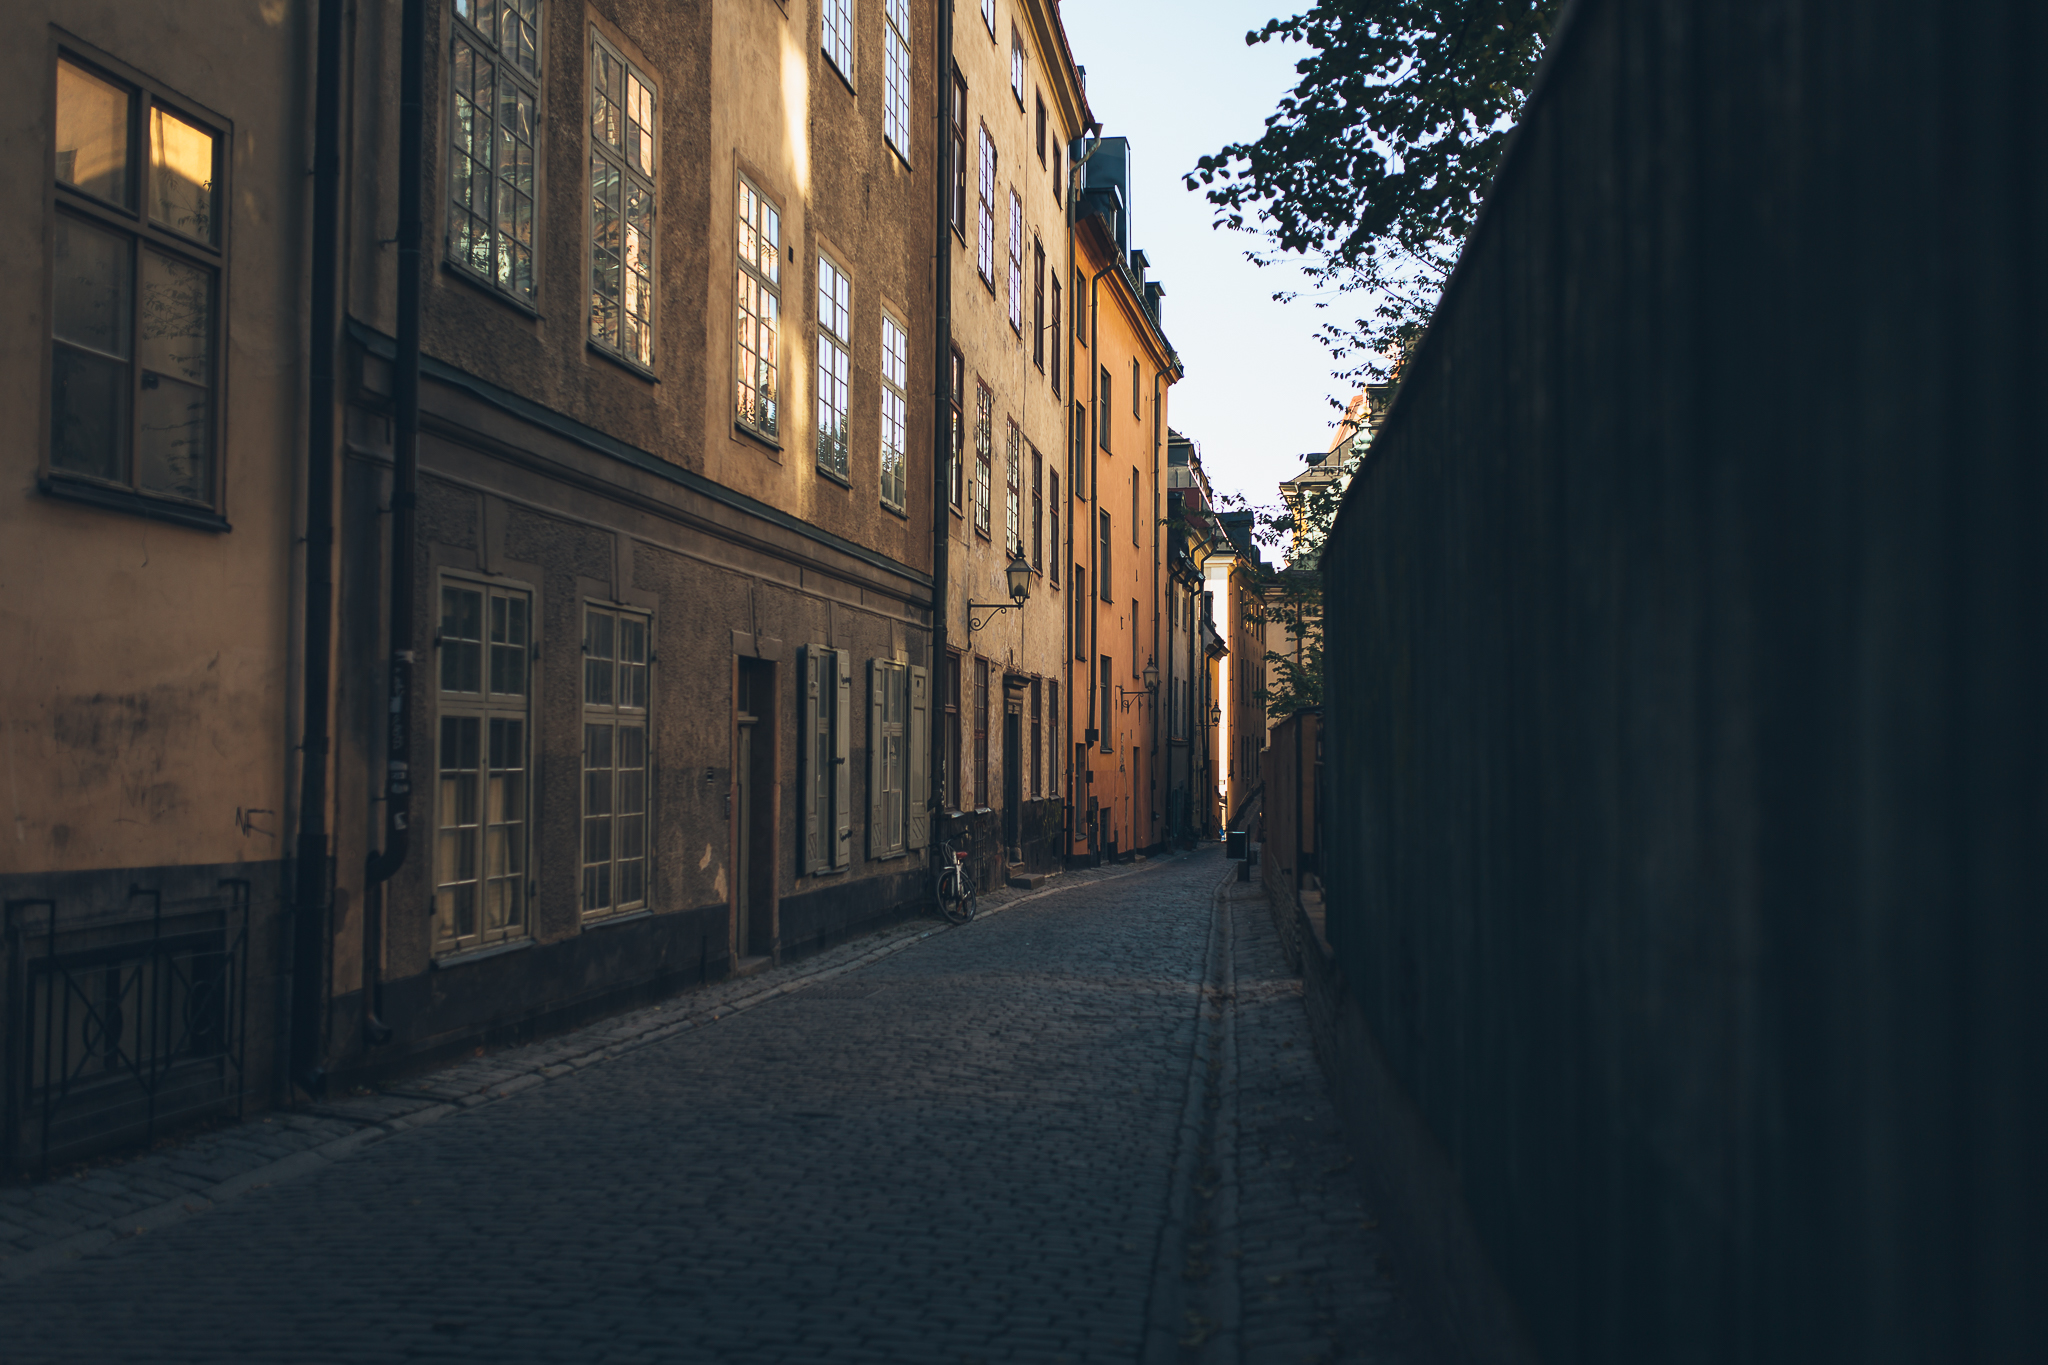 ourstories-sweden-010.jpg